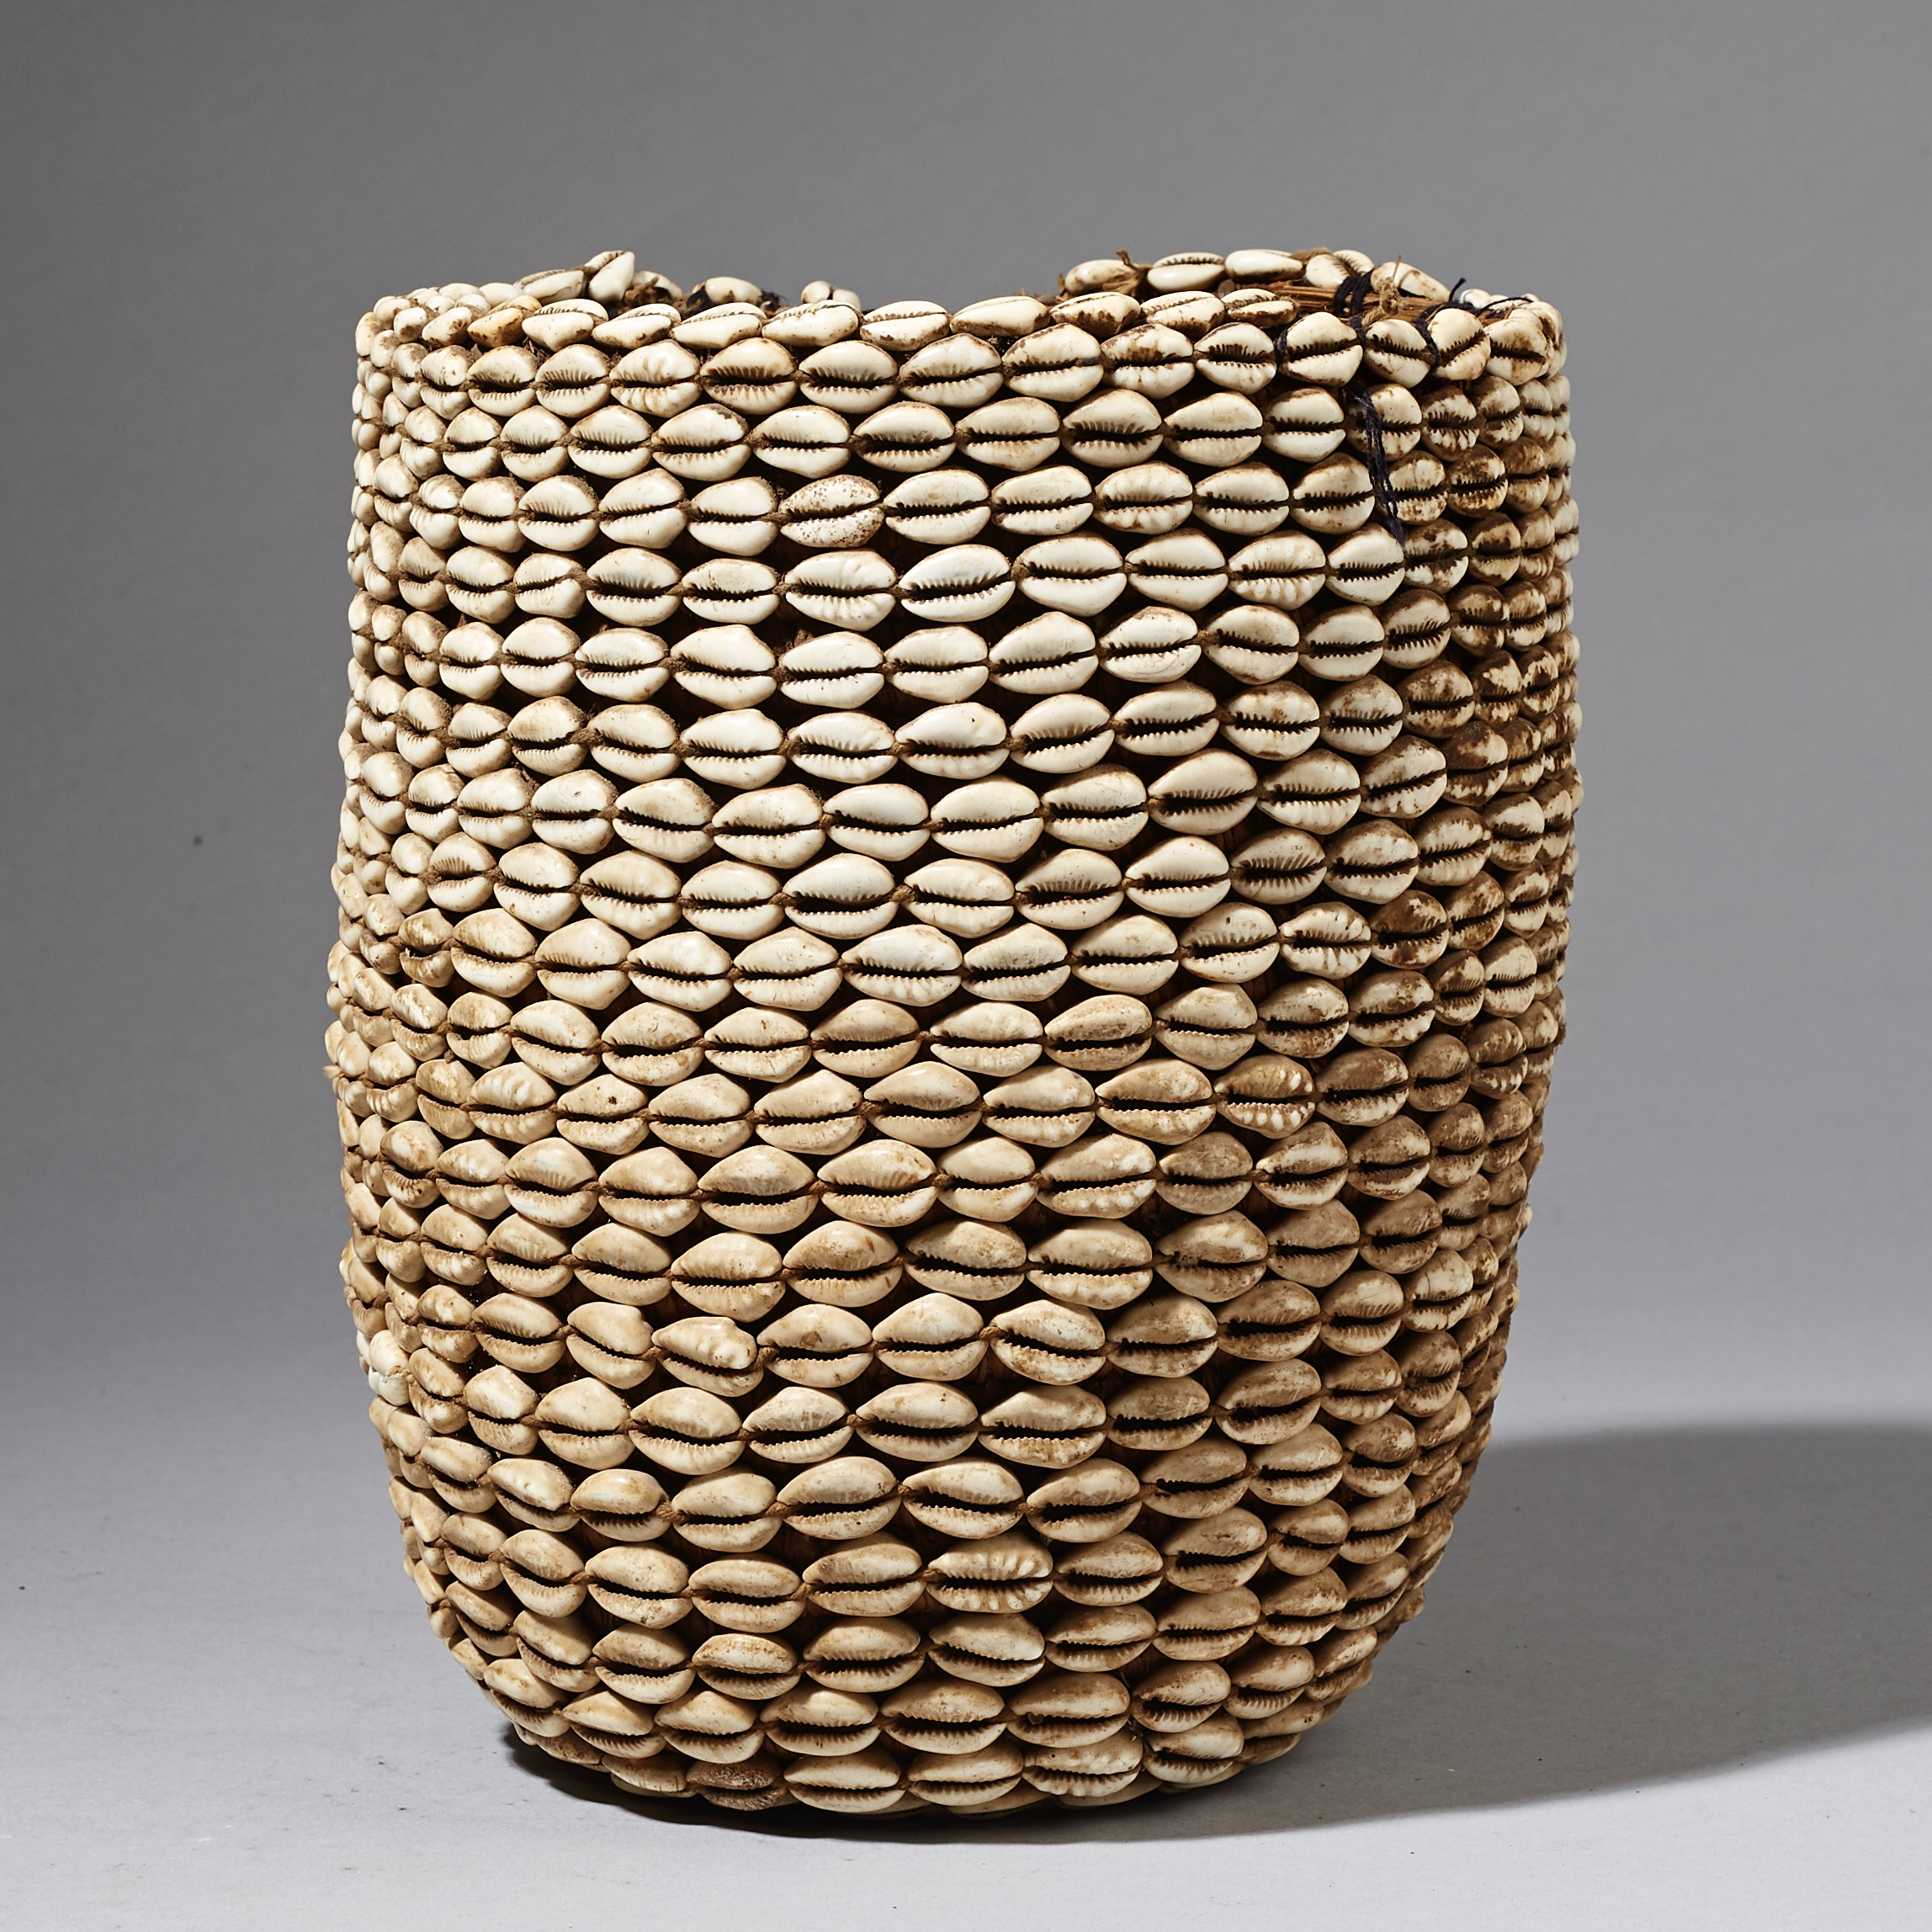 A GLORIOUS COWRIE COVERED BASKET FROM THE MOSSI TRIBE OF BURKINA FASO  ( No 2464 )